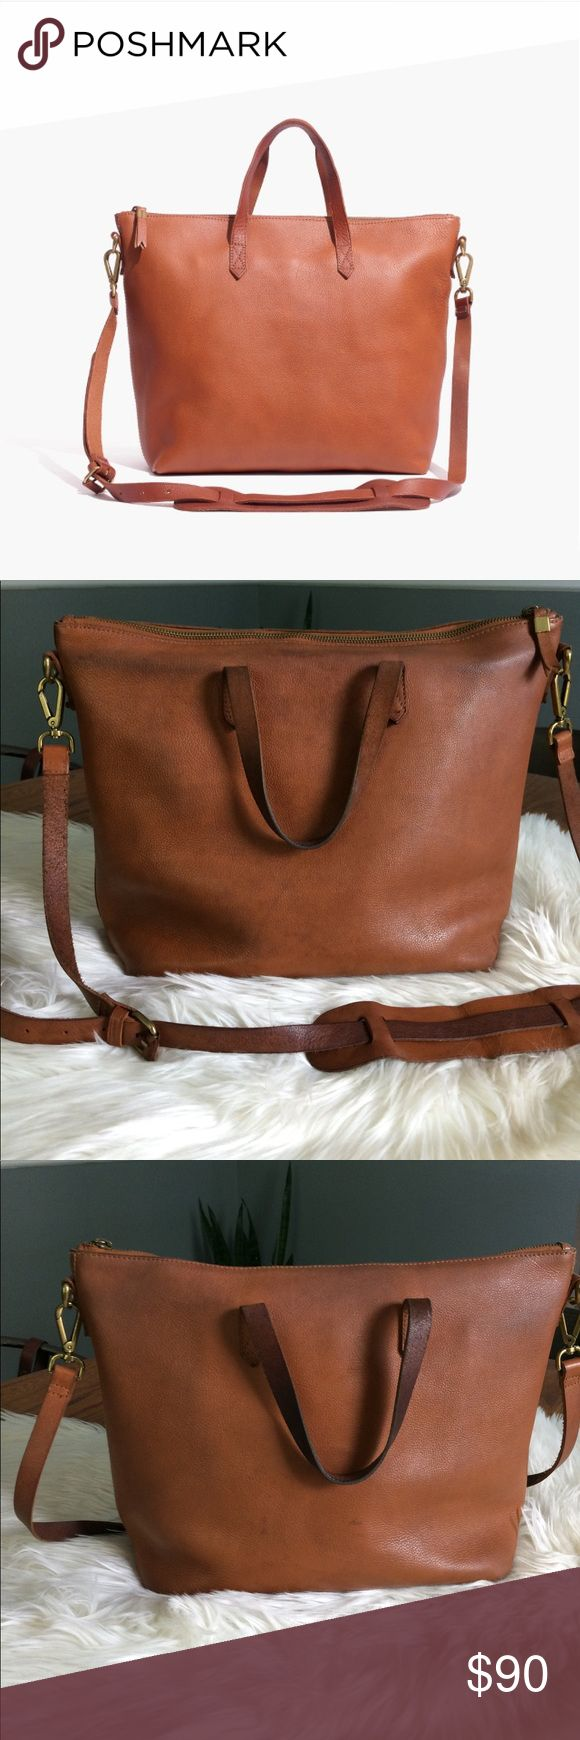 "Authentic Madewell Transport Satchel Well-loved with a lot of life left! Made of genuine vegetable tanned leather that burnishes with wear into a beautiful patina. As it is made of a natural material, each bag varies slightly in texture and color. Features two Top handles, zip closure, 1 interior zip pocket, 2 other interior pockets. 18 inch removable crossbody strap, 4 3/10"" handle drop. Measures 11 4/5"" H x 15 2/5"" W (at base) x 5 1/2 "" D. Perfect for work, travel or everyday. A quality…"